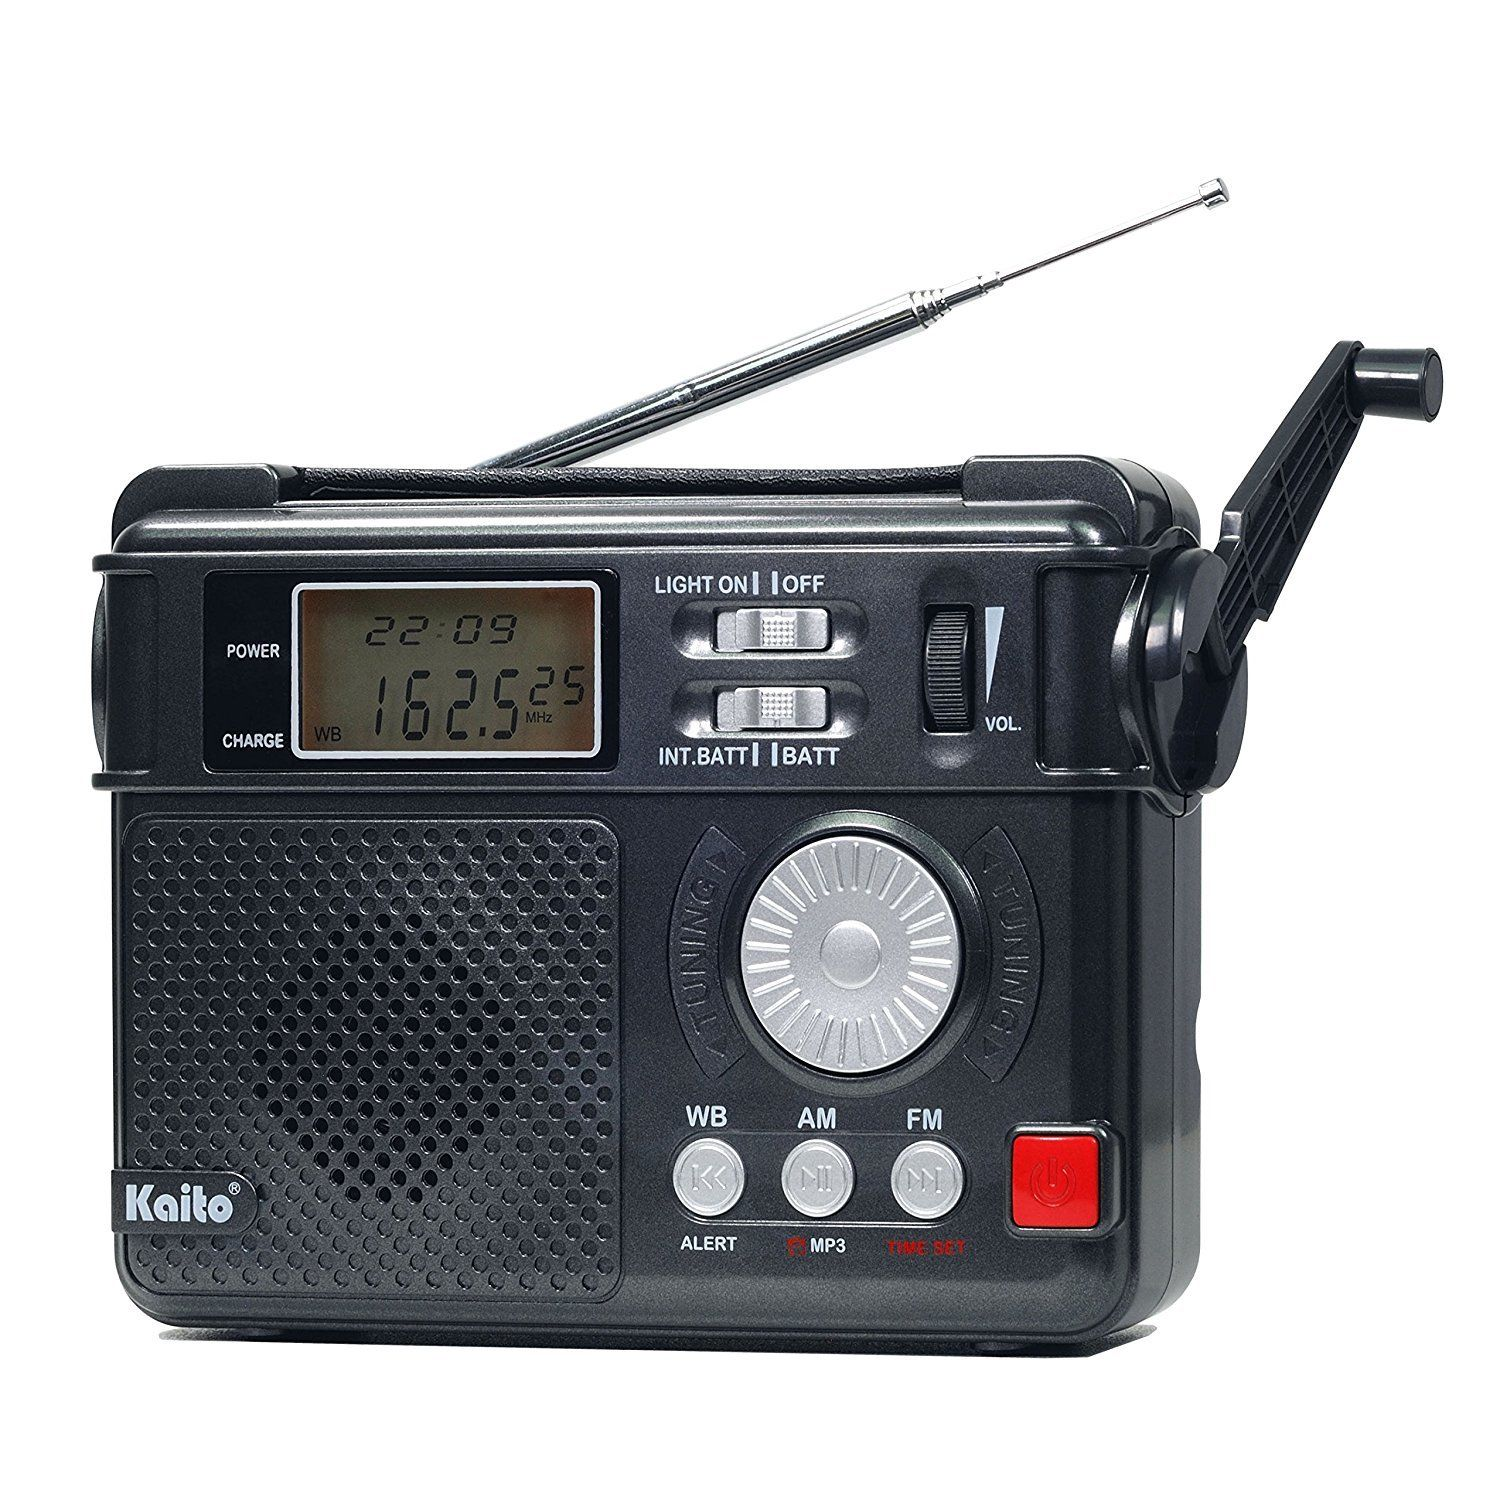 Kaito KA346 Digital AM FM NOAA Weather Alert Emergency Radio and Flashlight by Kaito